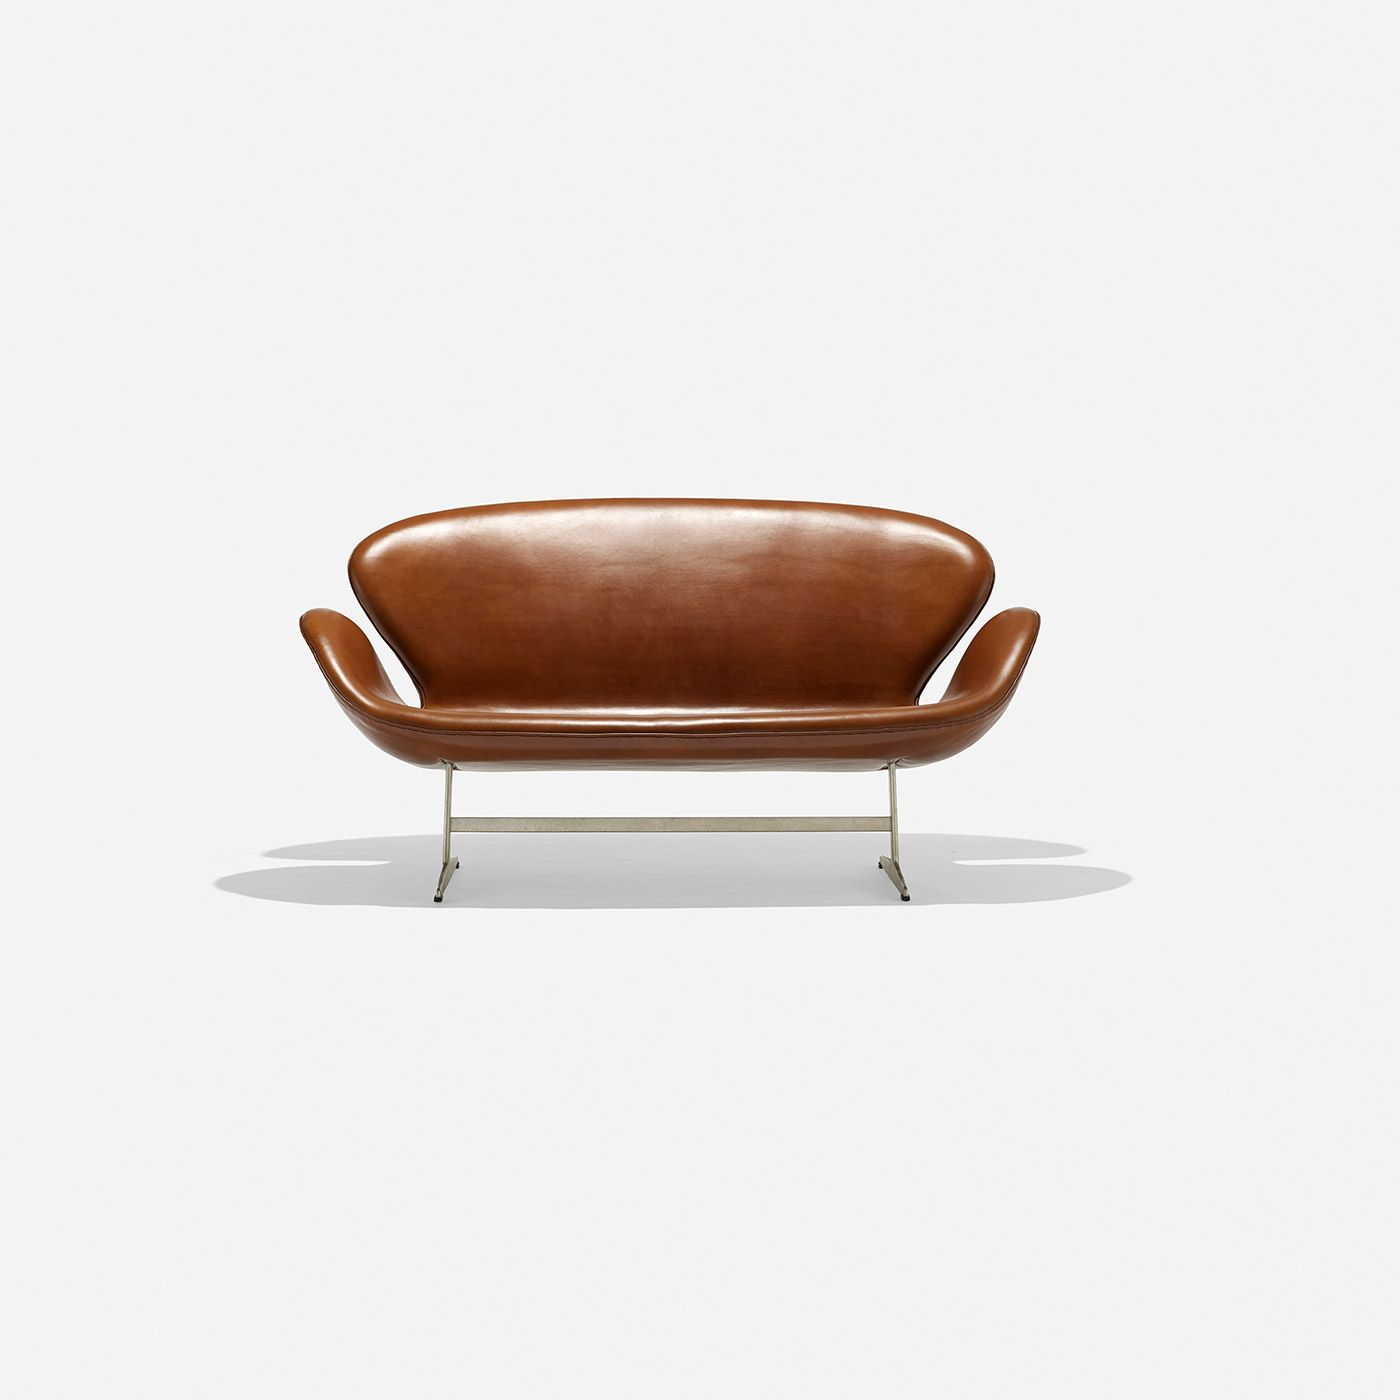 This arne jacobsen swan chair in cognac leather by fritz hansen is no - Arne Jacobsen Swan Settee Model 3321 Fritz Hansen Denmark 1958 Leather Cast Aluminum